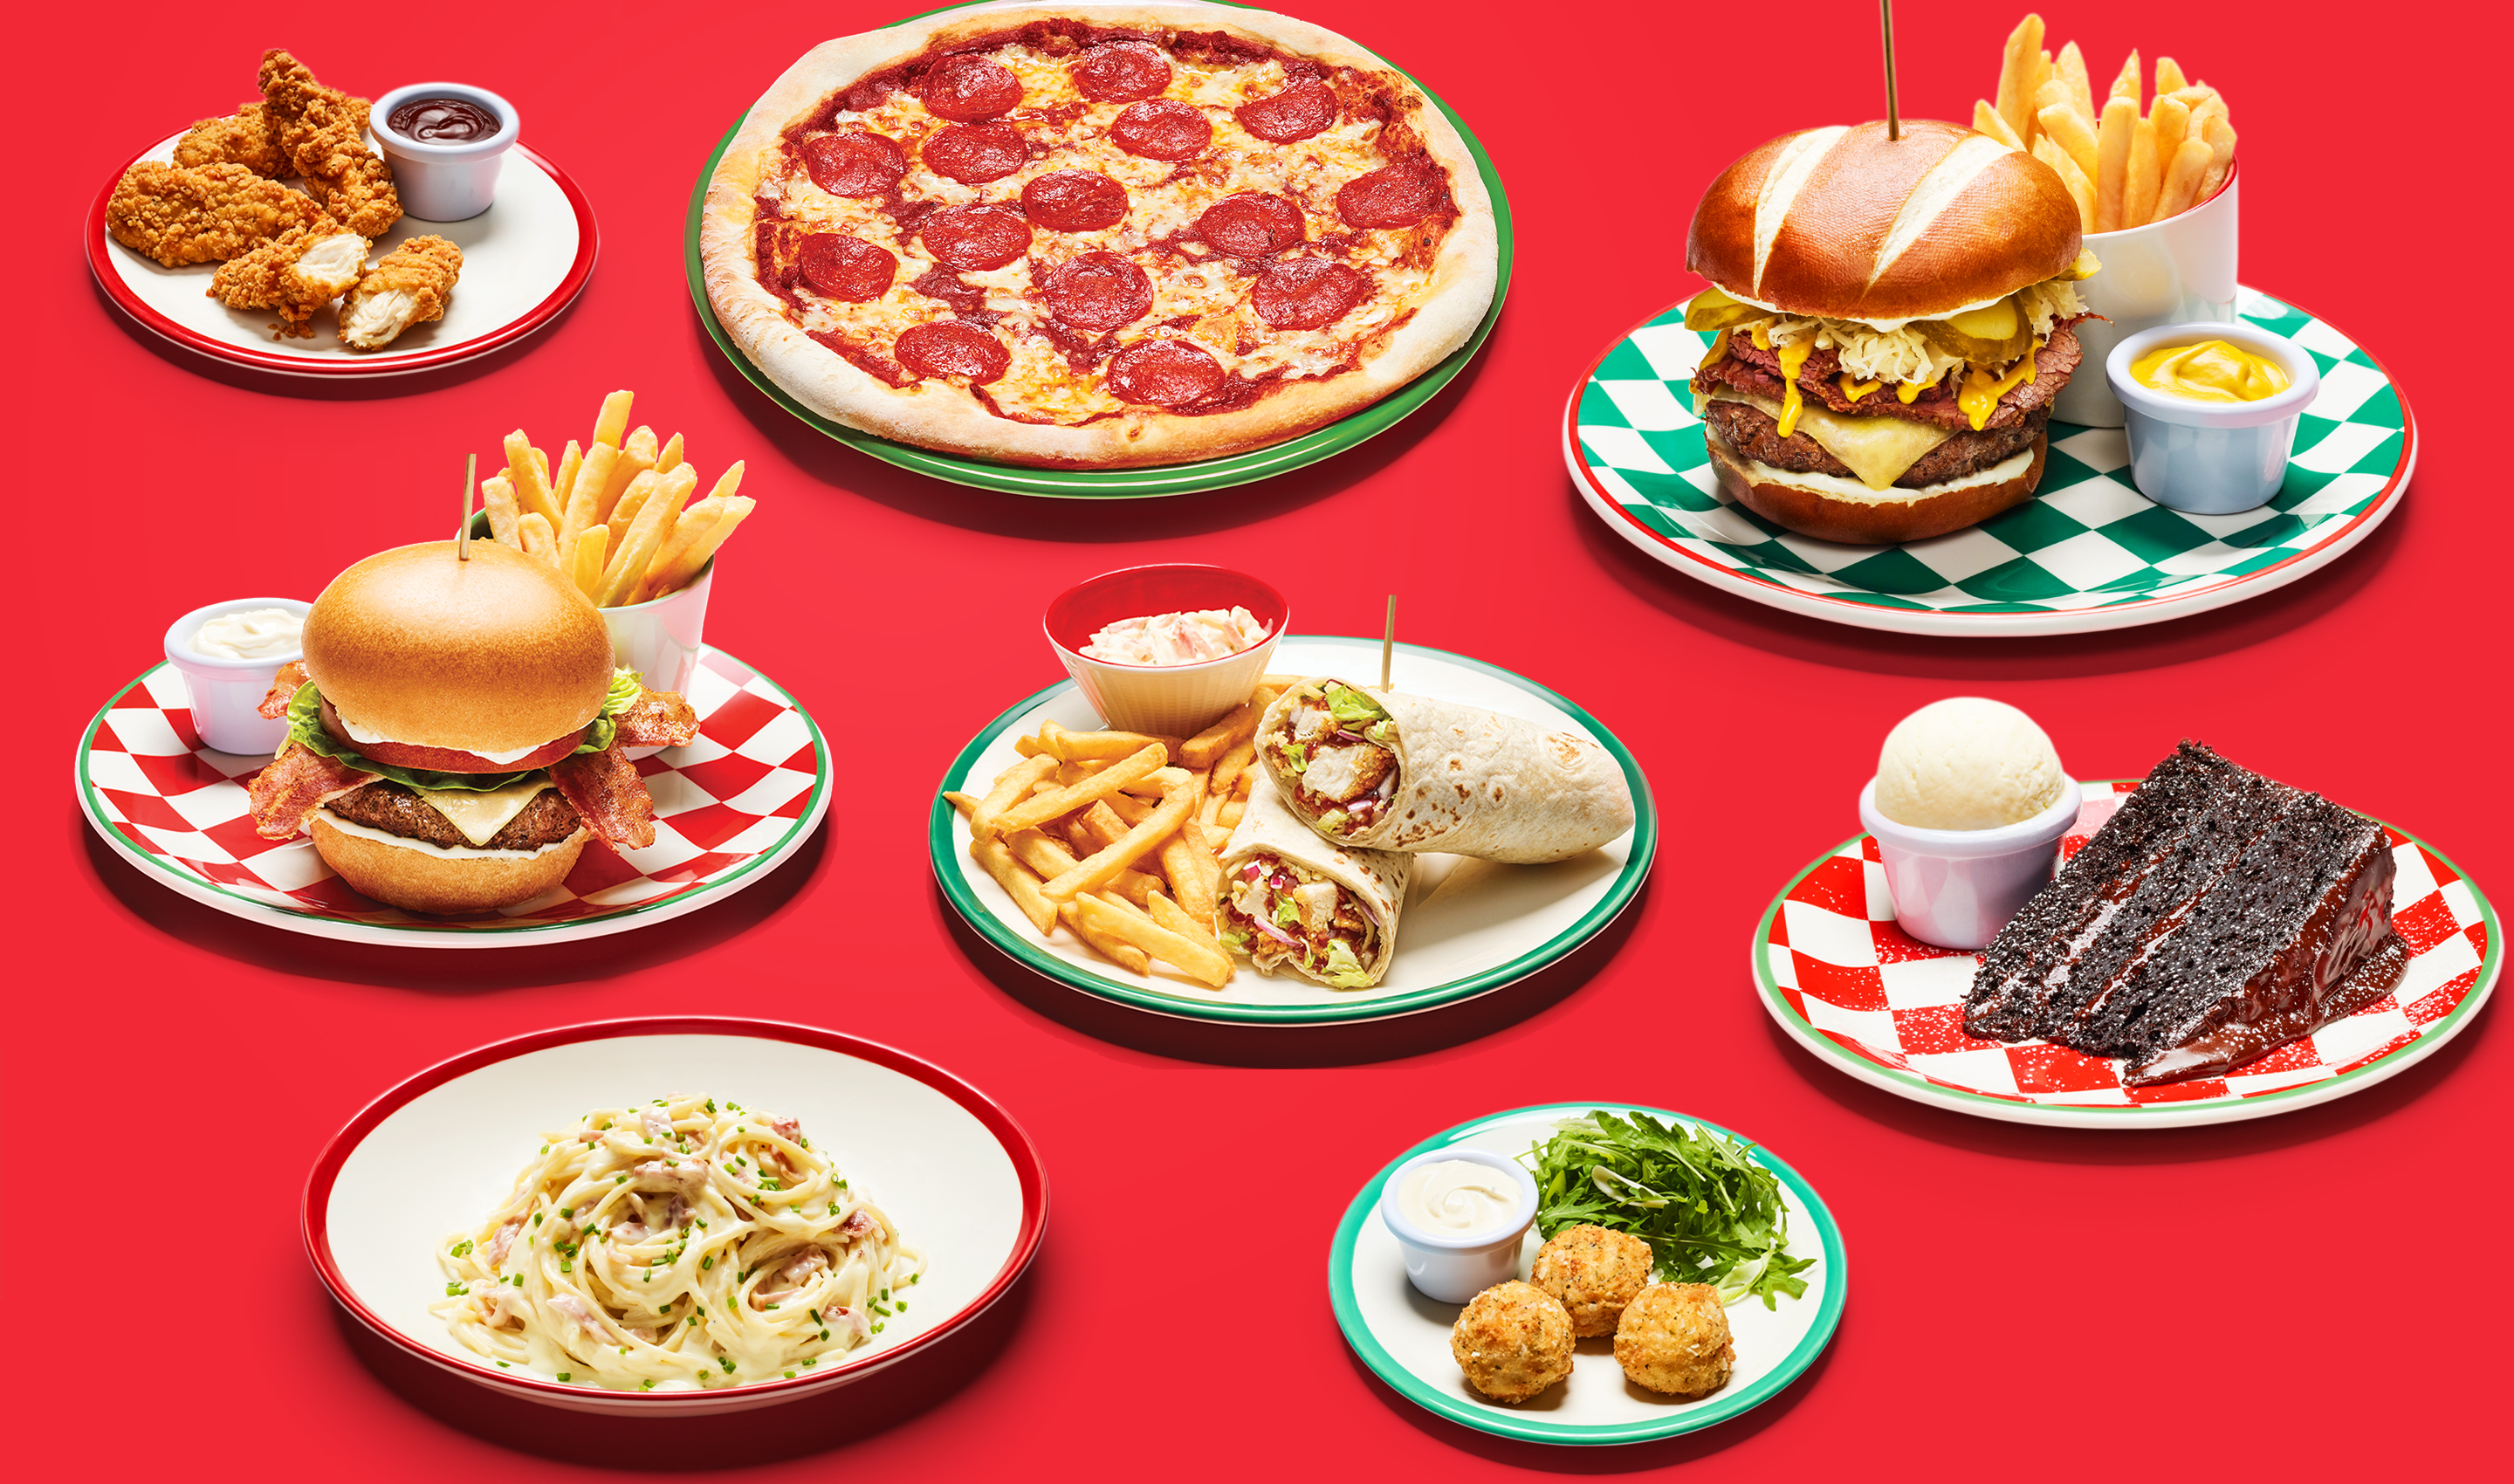 Food - Burger - Frankie & Benny's - Pizza - Chips - Pasta - Cake - Chocolate